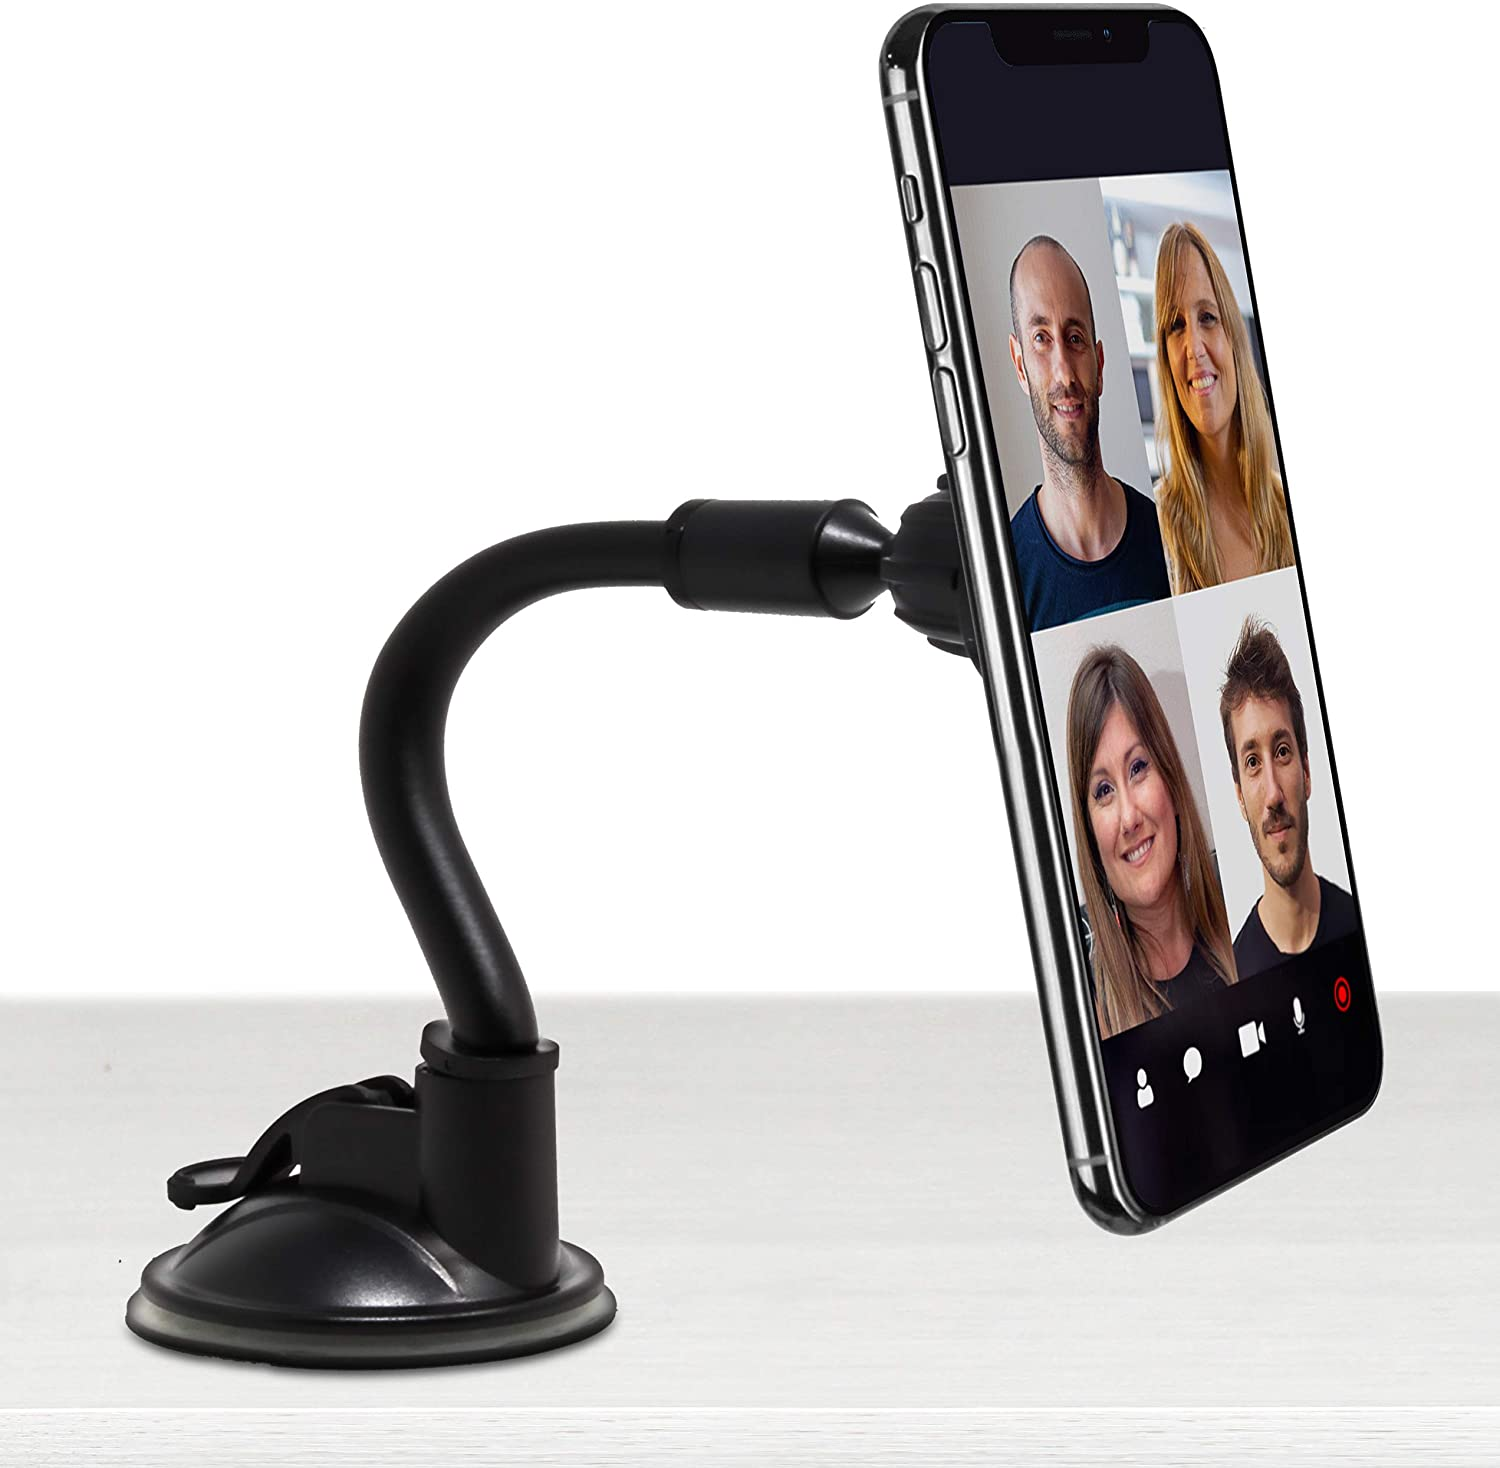 Aduro Magnetic Phone Stand for Desk, Cell Phone Stand for iPhone, Holder Gooseneck and Car Dashboard Mount with Suction Cup